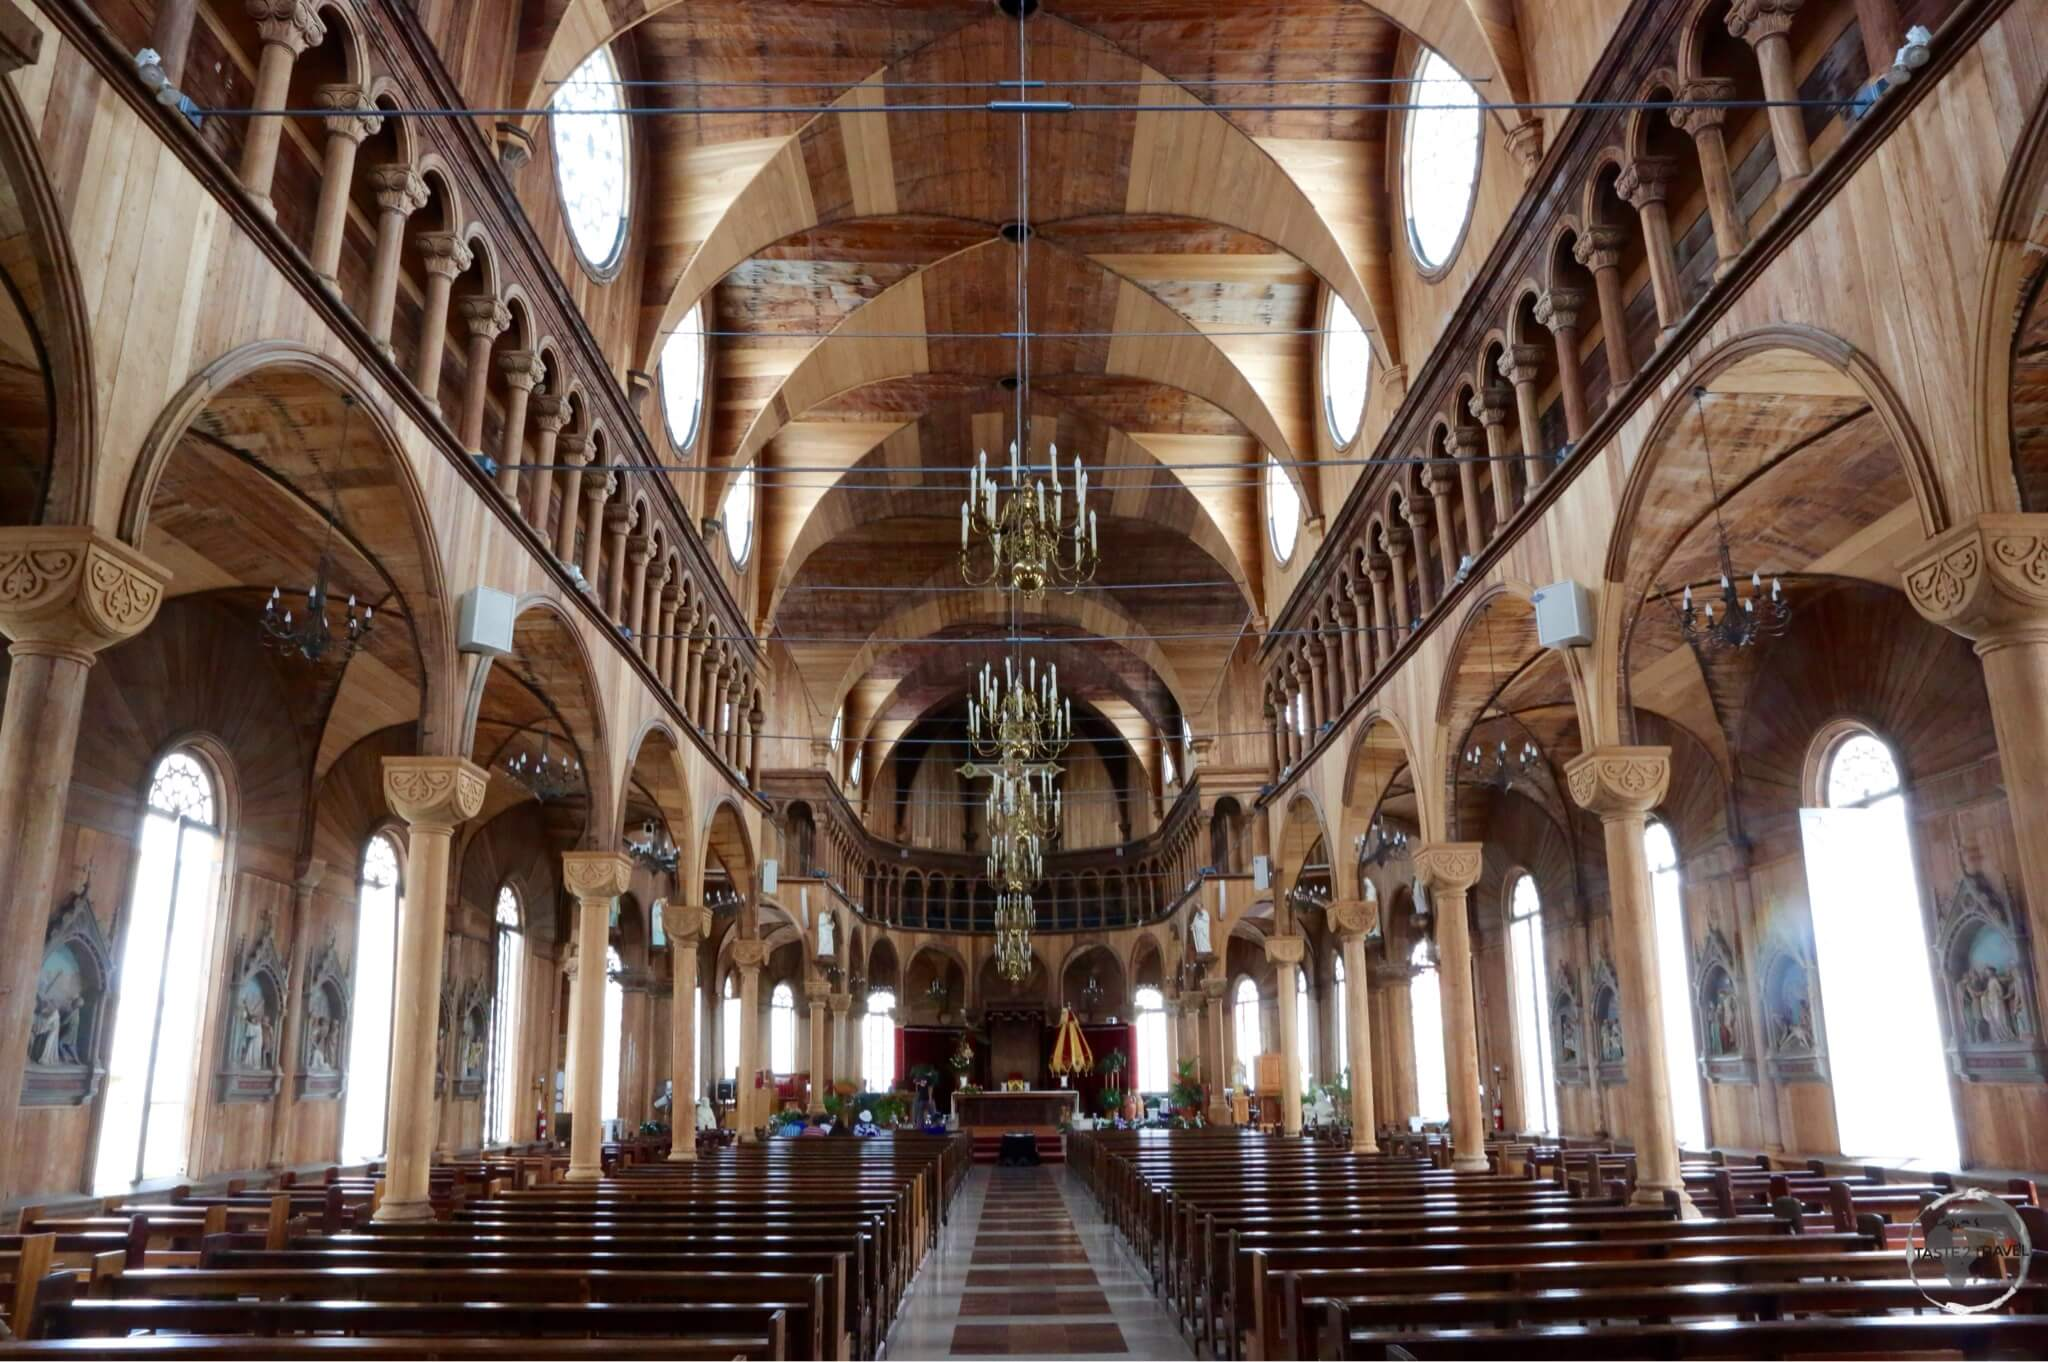 The wooden interior of St. Peter and St. Paul Basilica in Paramaribo